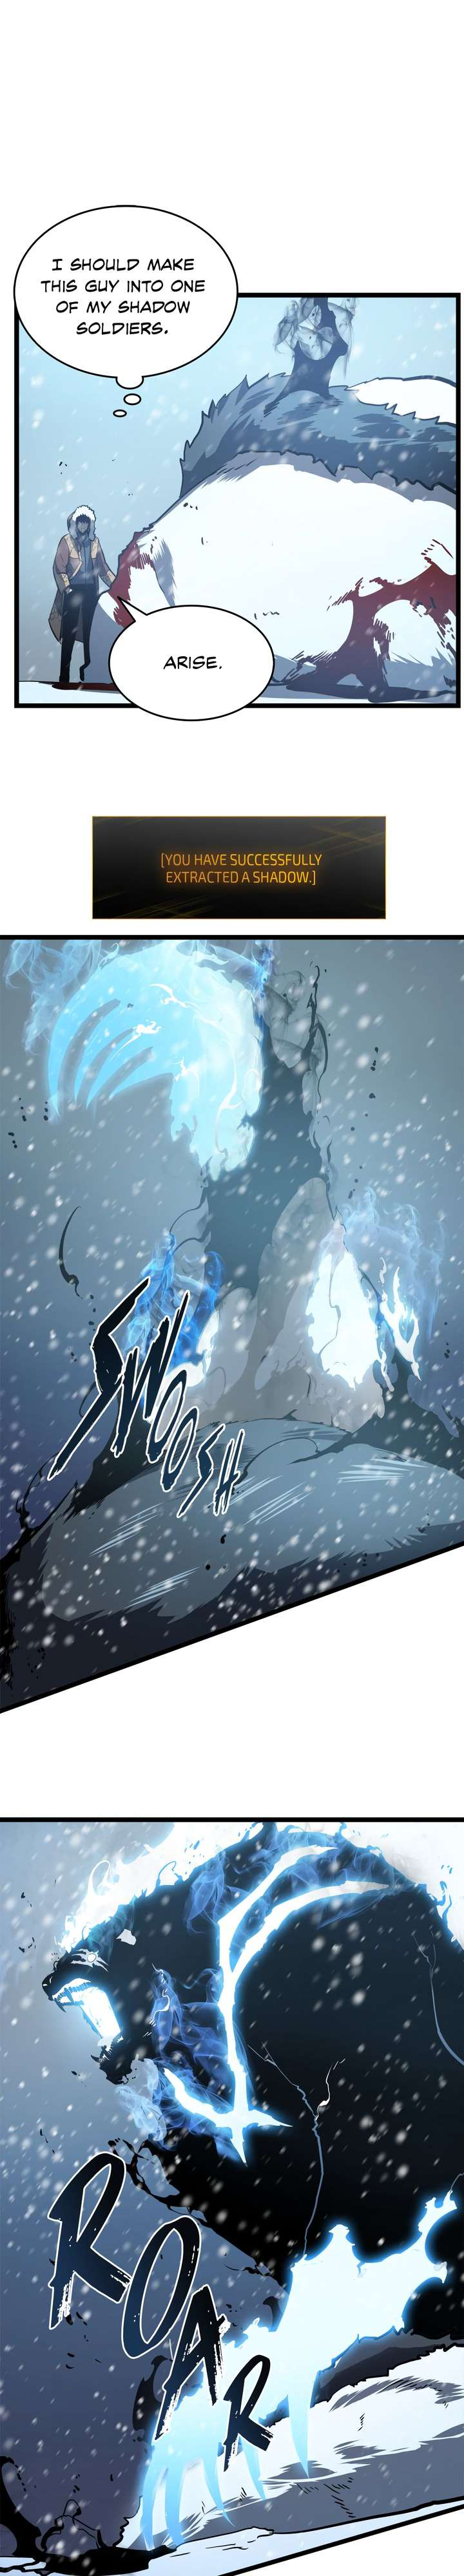 Solo Leveling Chapter 51 Page 22